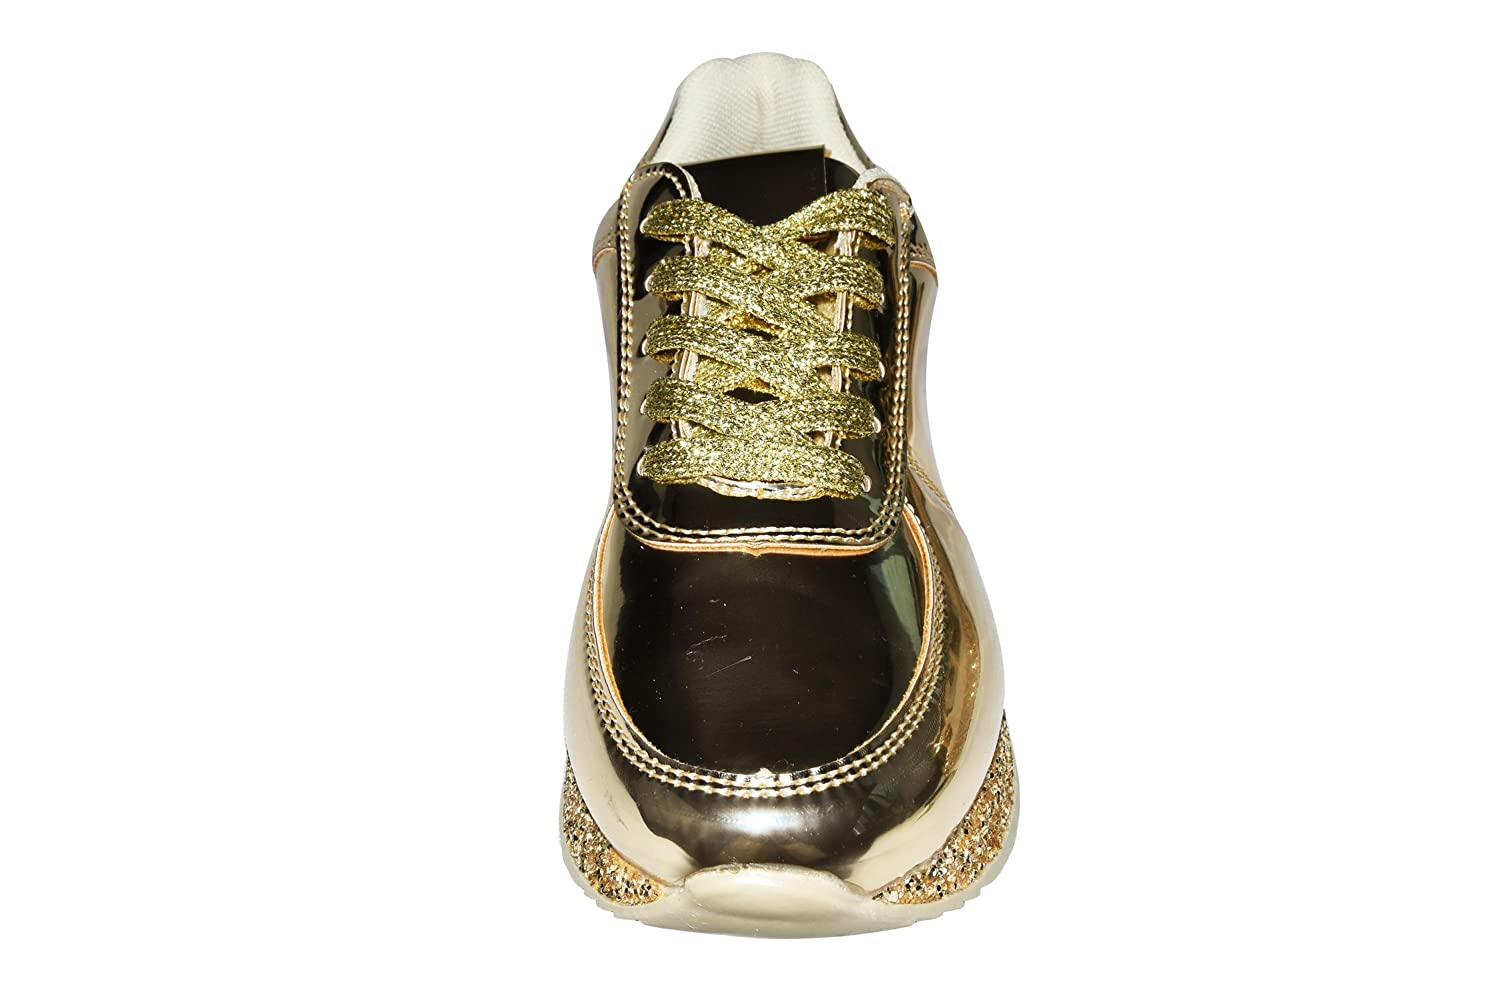 e20c603215ef ... ROXY ROSE ROSE ROSE Women Fashion Metallic Sneaker Glitter Flatform  Quilted Lace up Casual Shoes B077HXNDVF ...